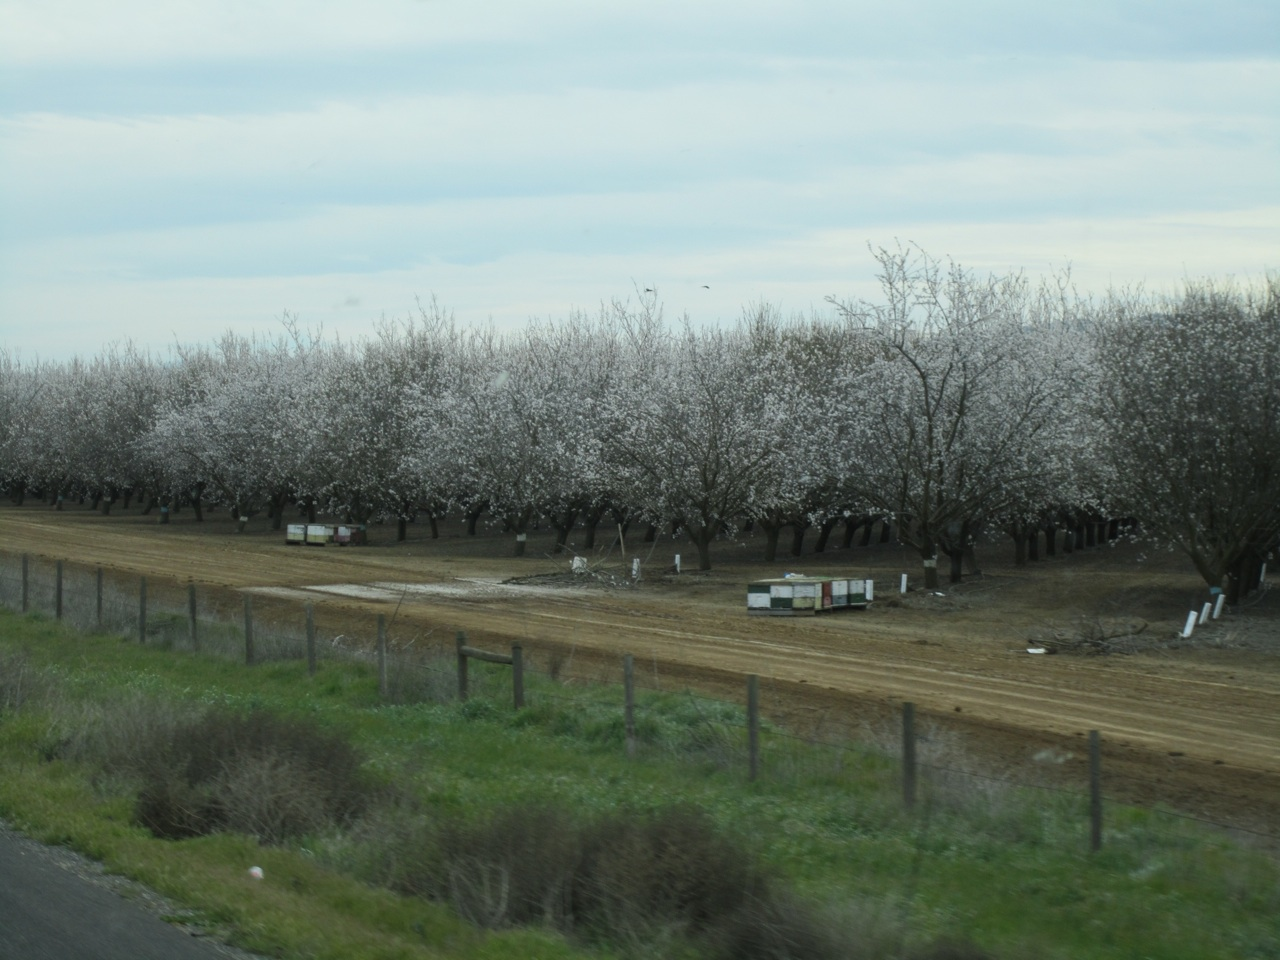 Almond Trees In Full Bloom With Bees Hives Next To Them For Pollination.